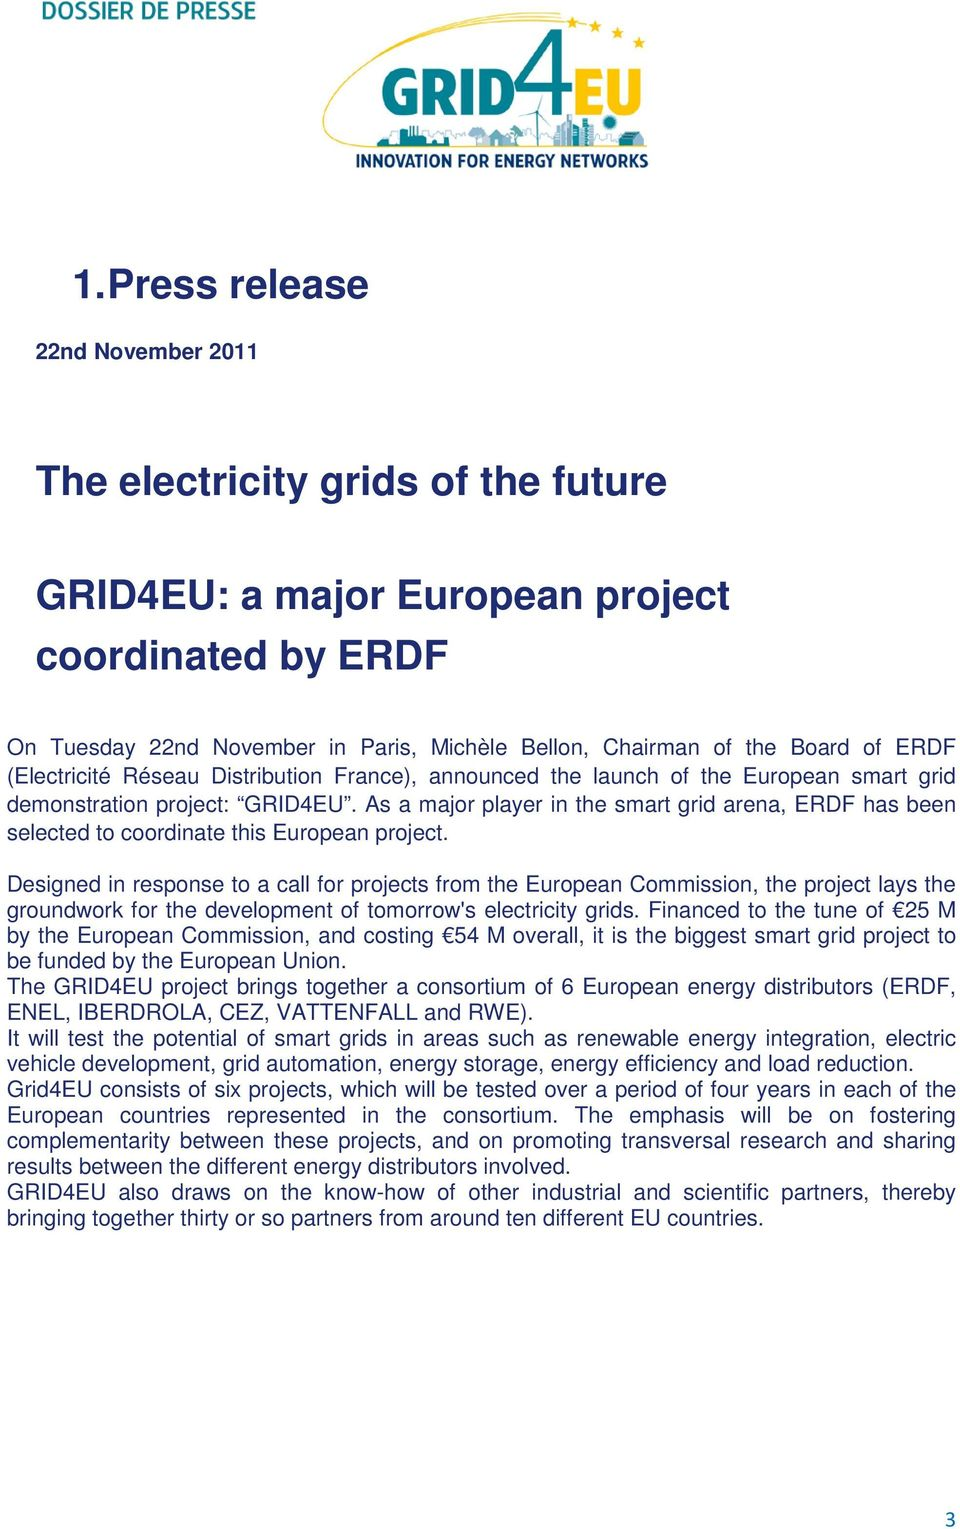 As a major player in the smart grid arena, ERDF has been selected to coordinate this European project.